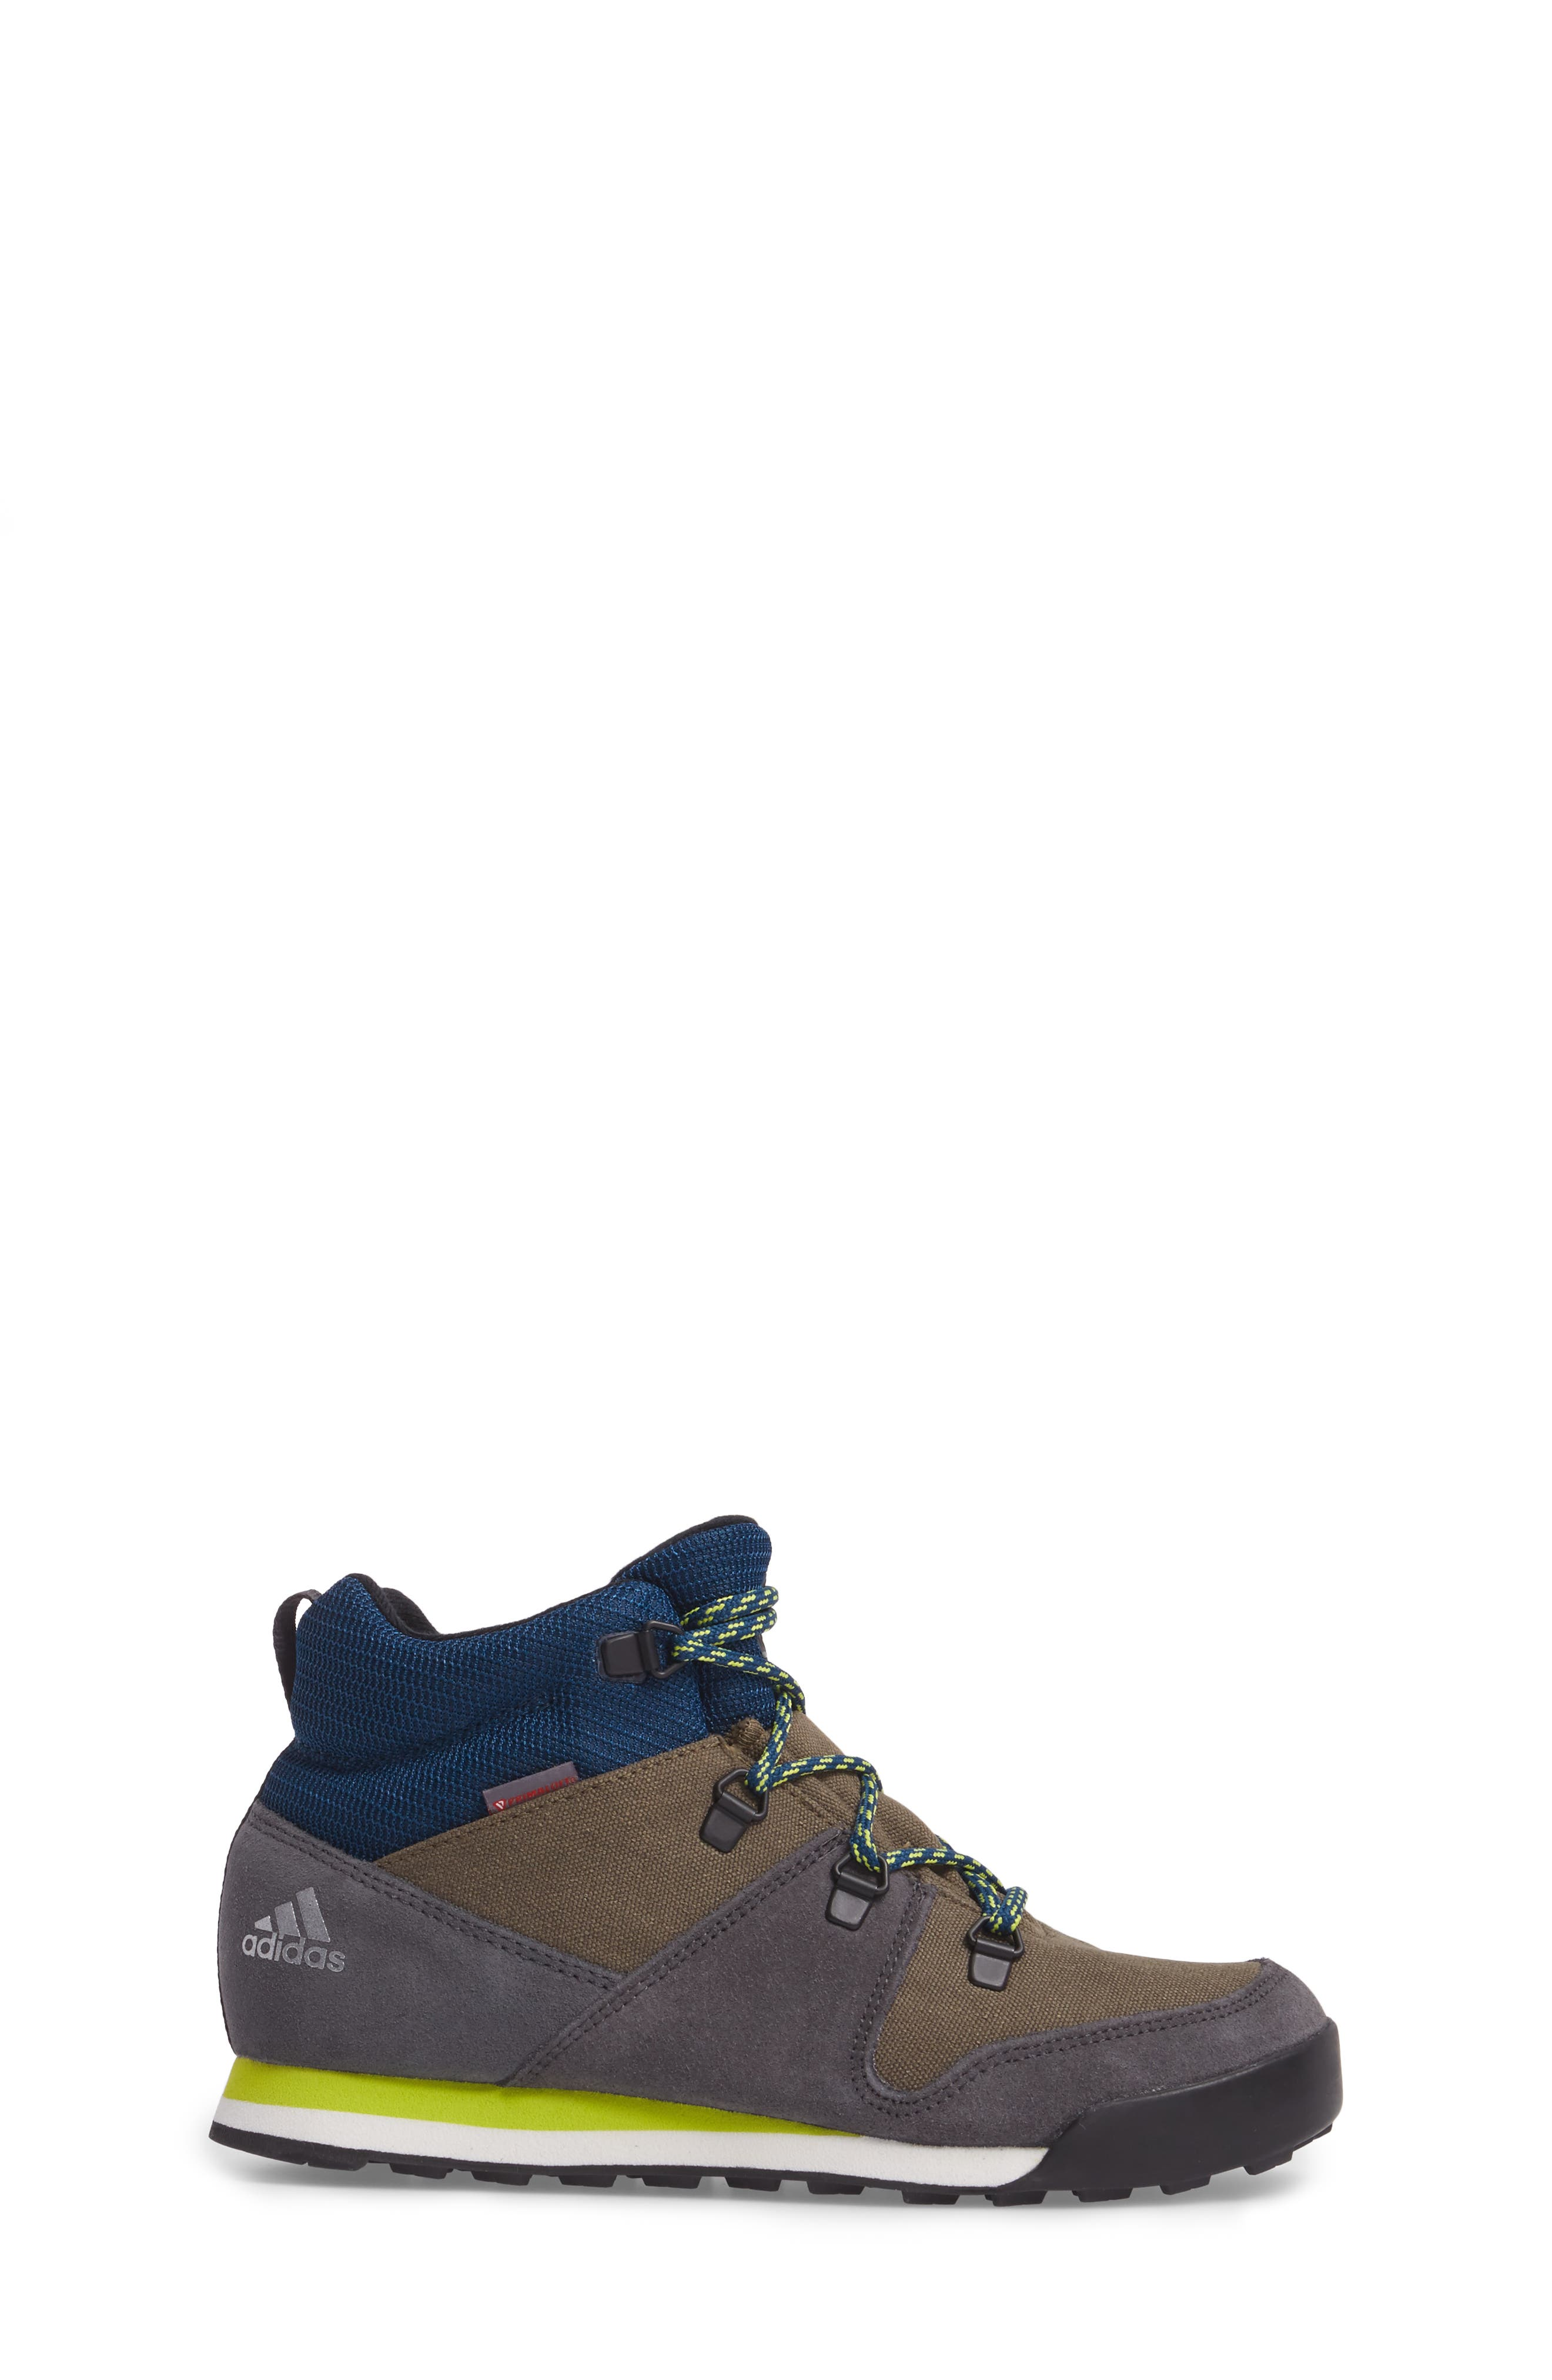 Snowpitch Insulated Sneaker Boot,                             Alternate thumbnail 3, color,                             Cargo/ Black/ Solar Yellow